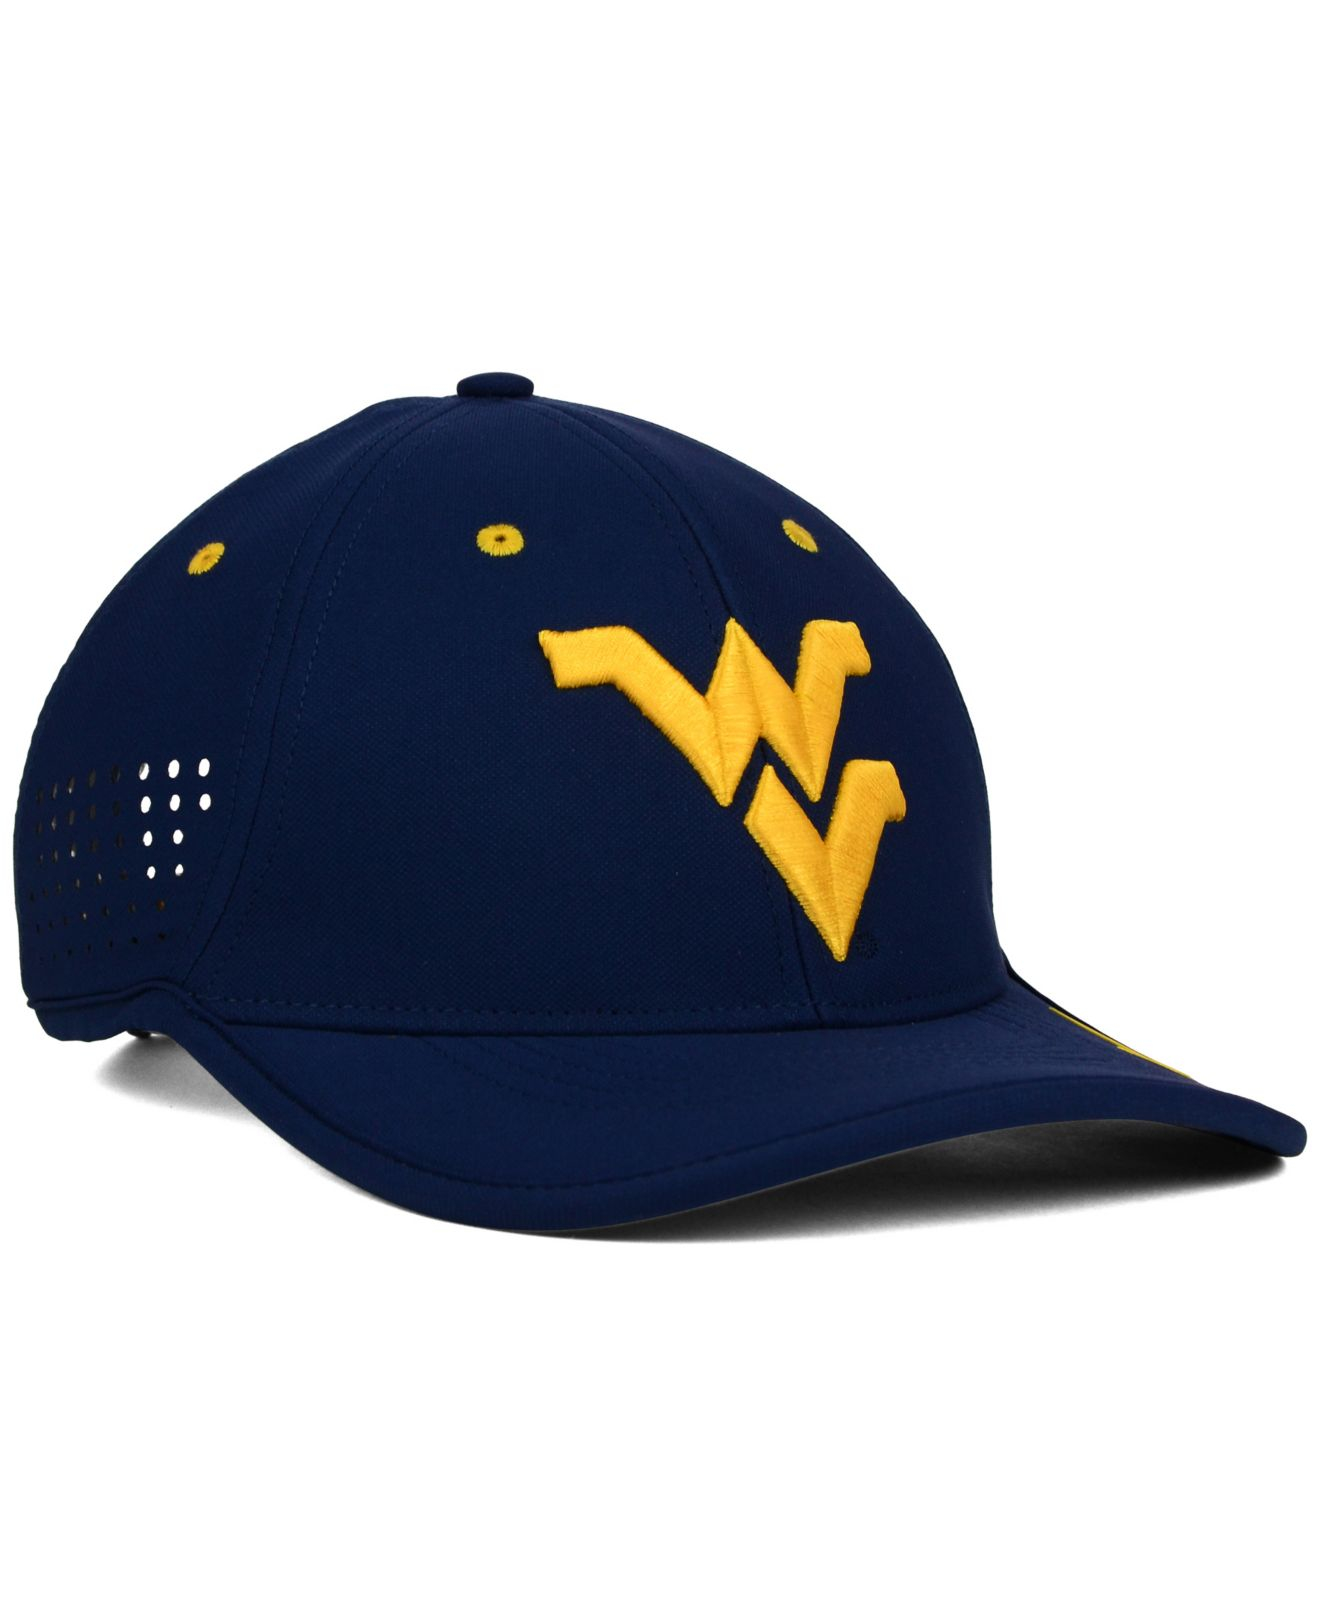 reputable site 7ea54 35c2f ... order lyst nike west virginia mountaineers dri fit coaches cap in blue  f140f 93d86